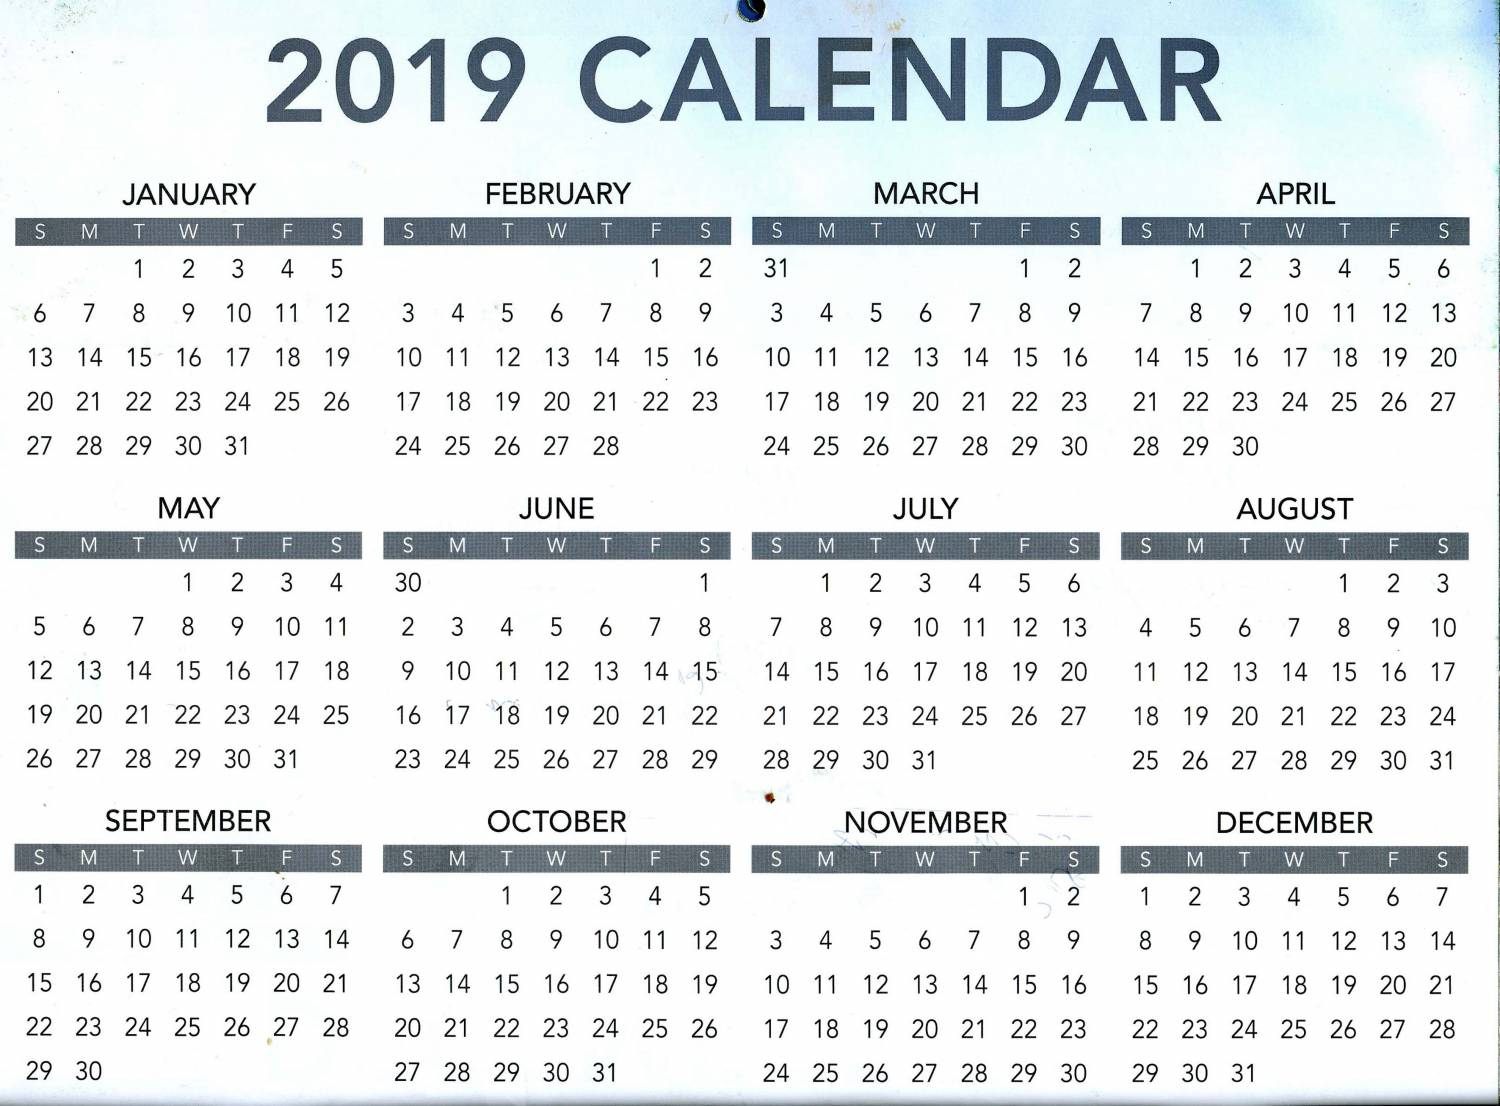 2019 OACT Calendar Has Something For Everybody